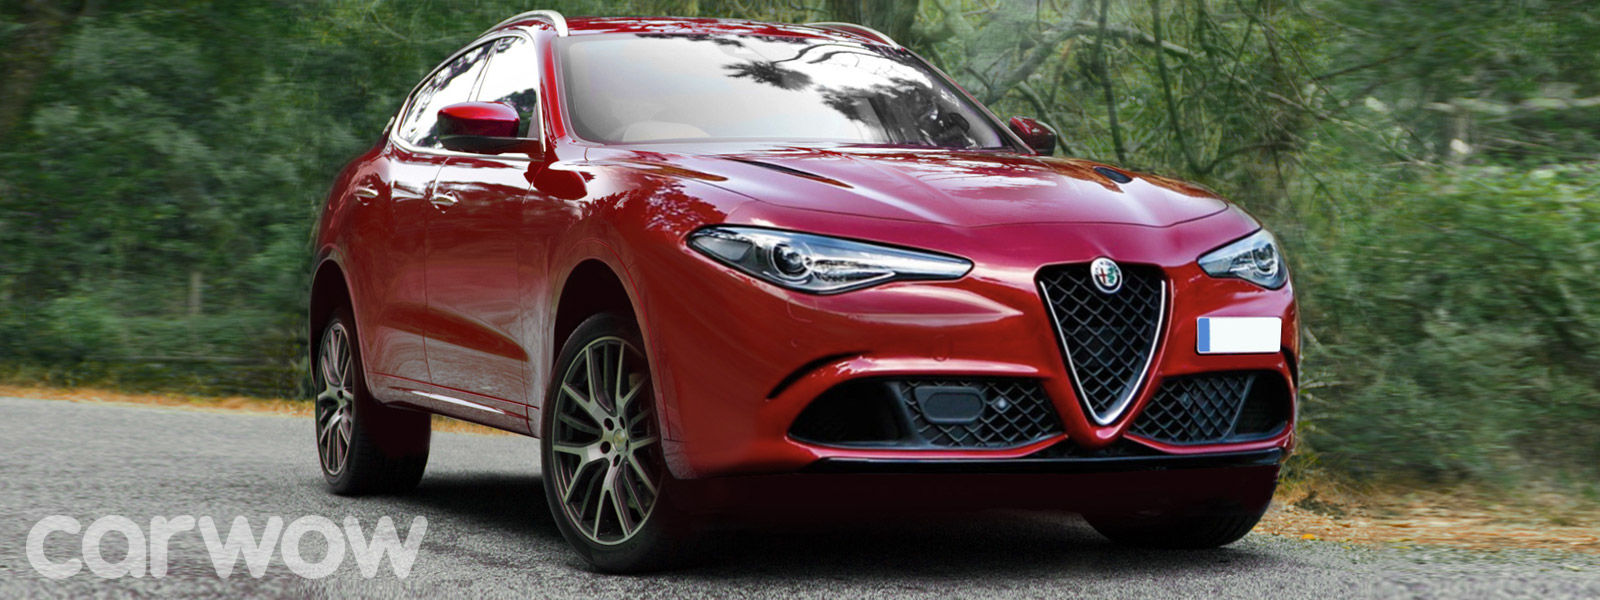 alfa romeo suv stelvio. Black Bedroom Furniture Sets. Home Design Ideas